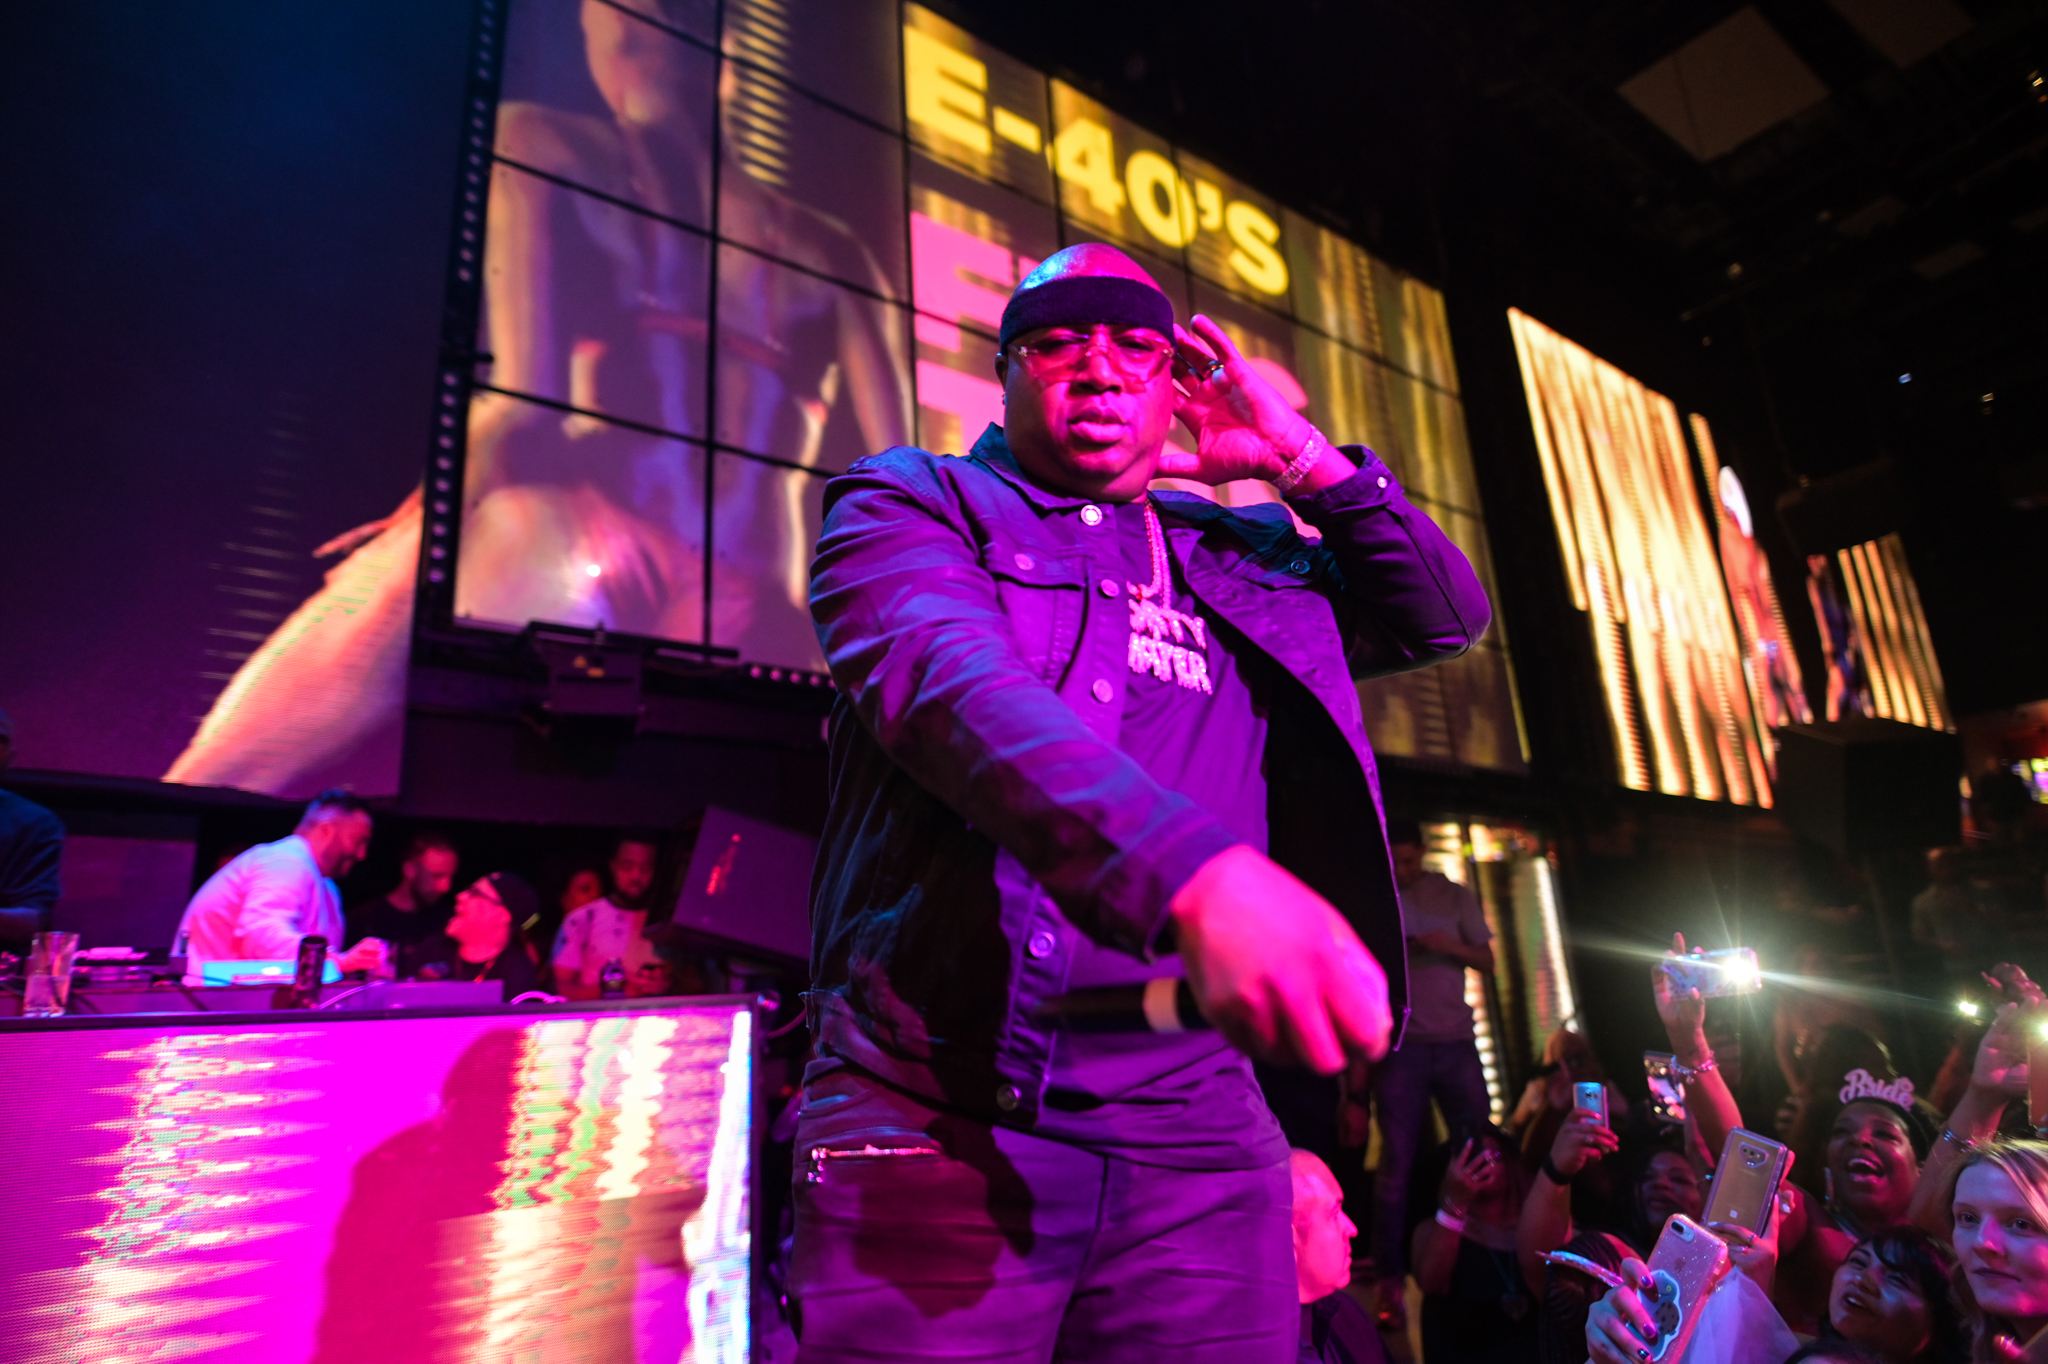 E-40 Las Vegas, E-40 The Light Nightclub, E-40 Mandalay Bay Resort and Casino , E-40 Las Vegas Residency, E-40 Las Vegas 2019, The Light Nightclub 2019